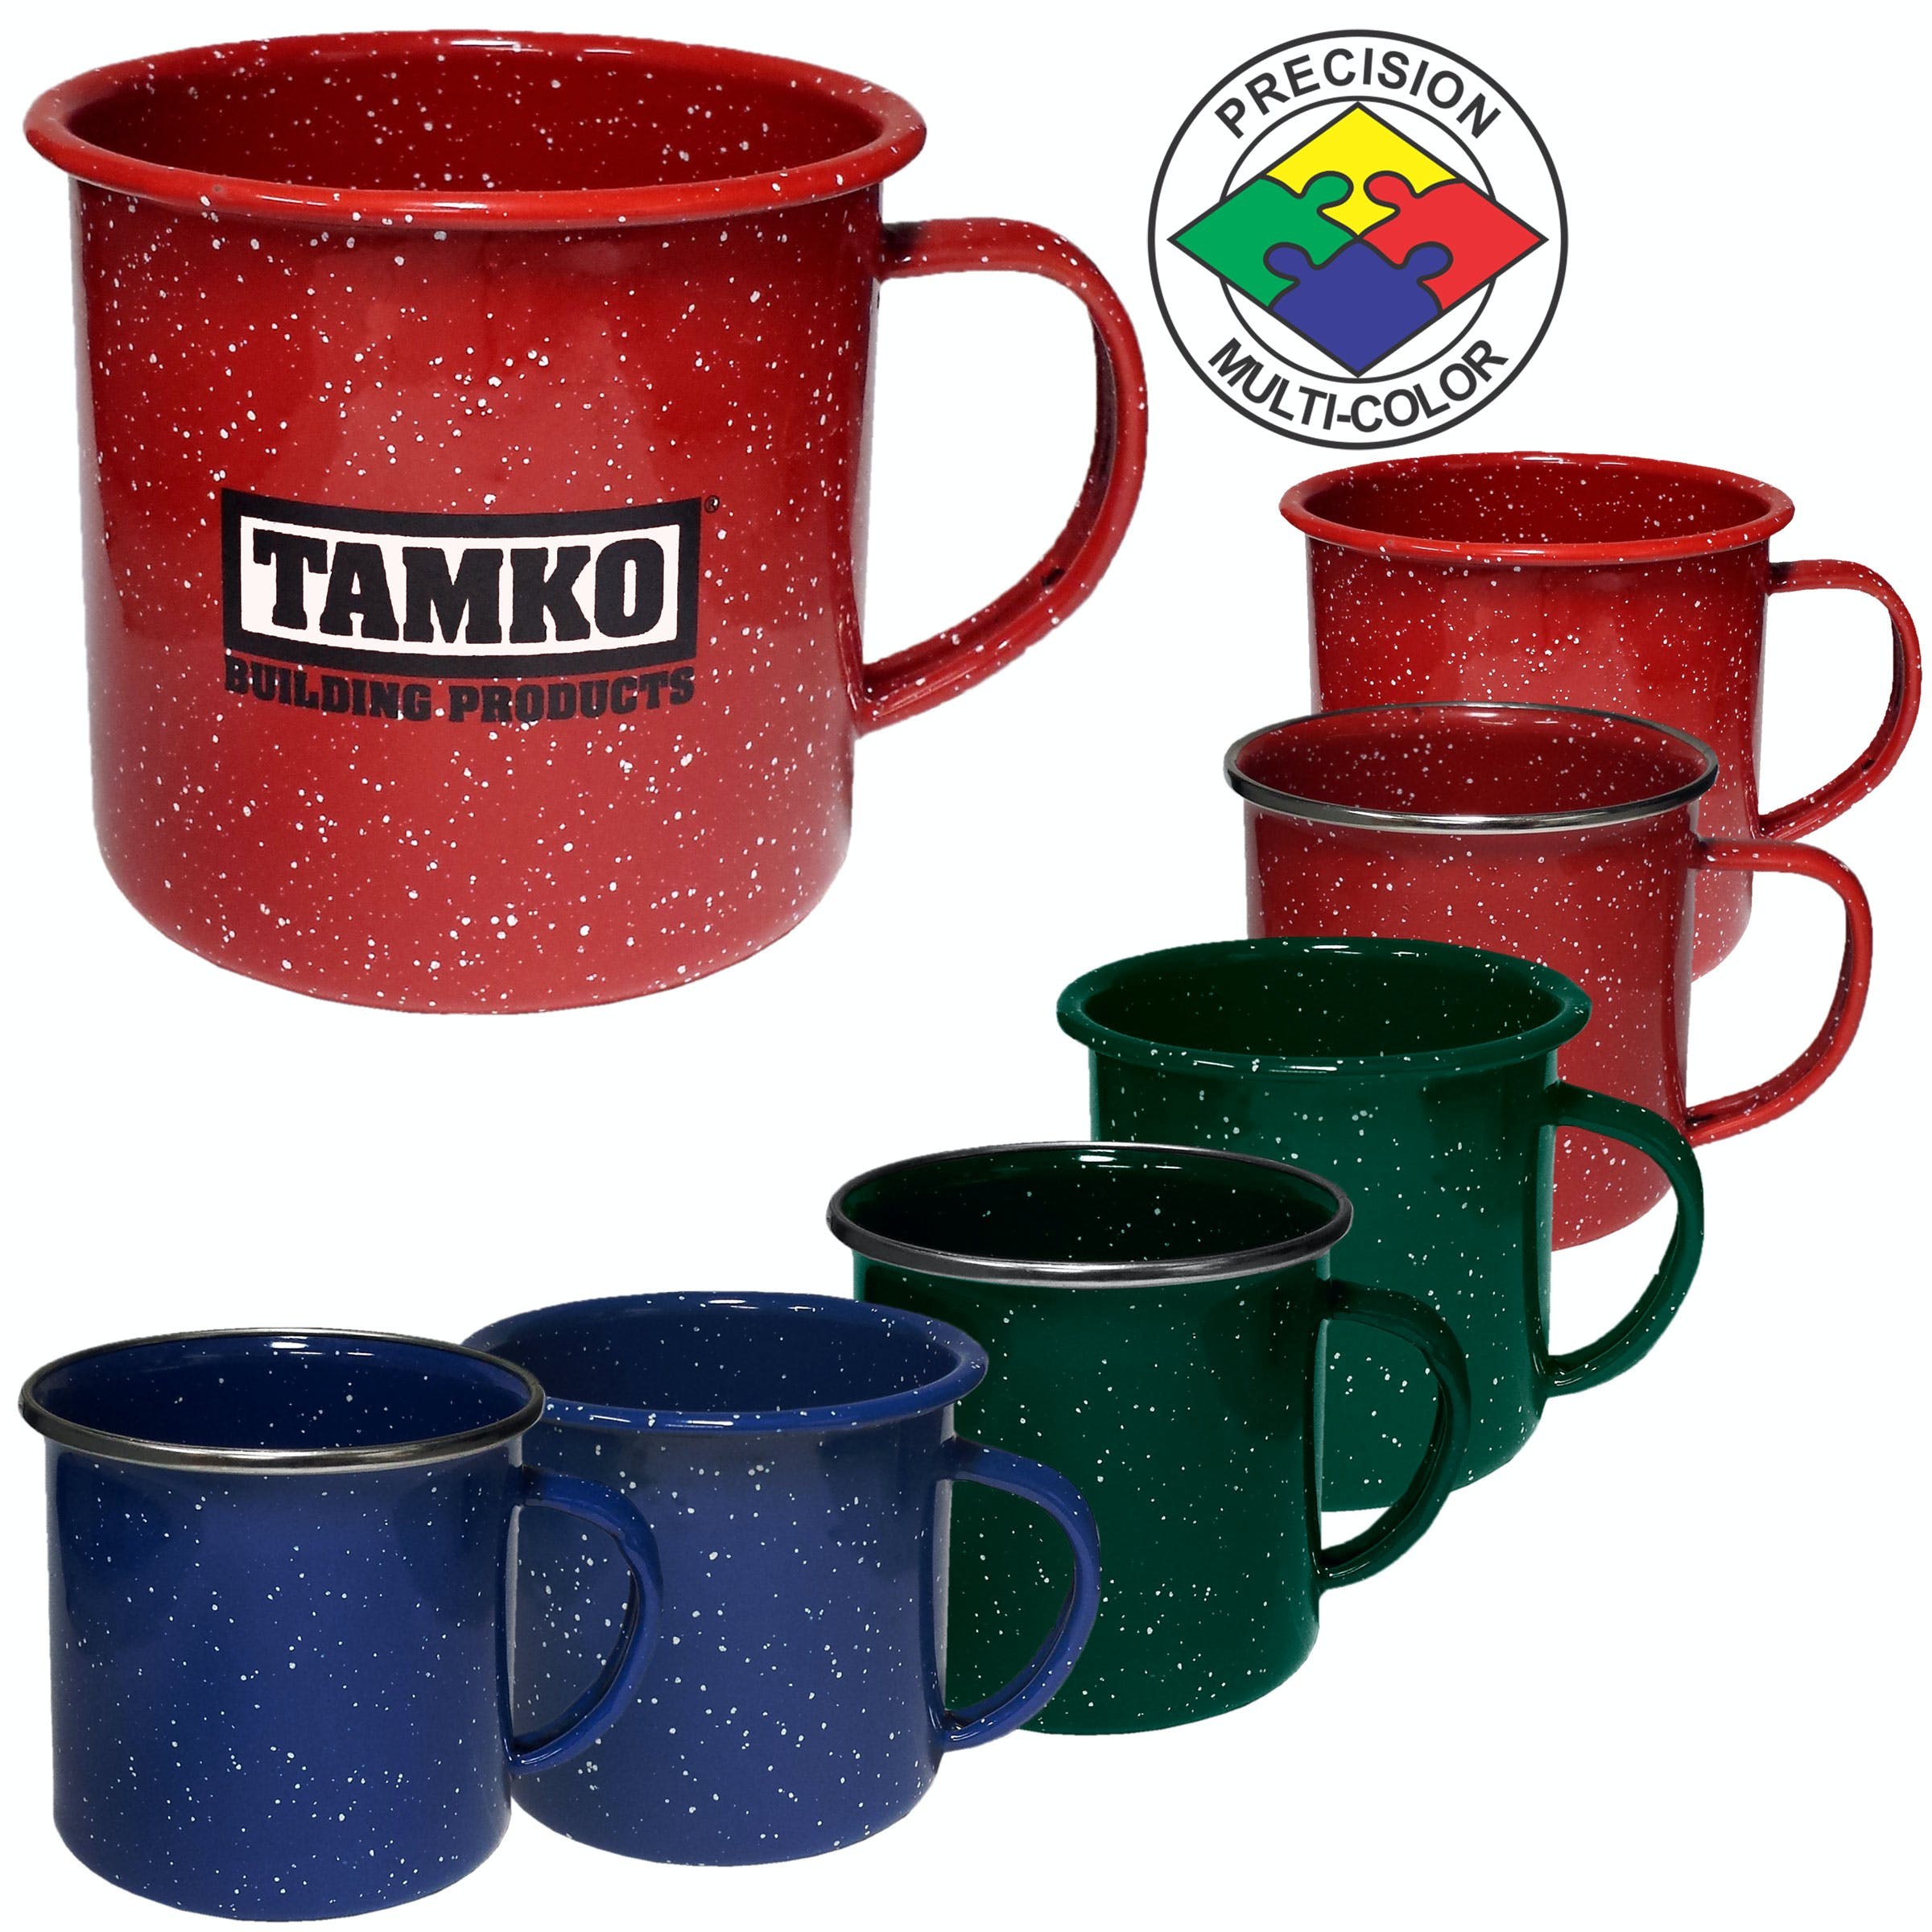 12 oz Enameled Steel Cups